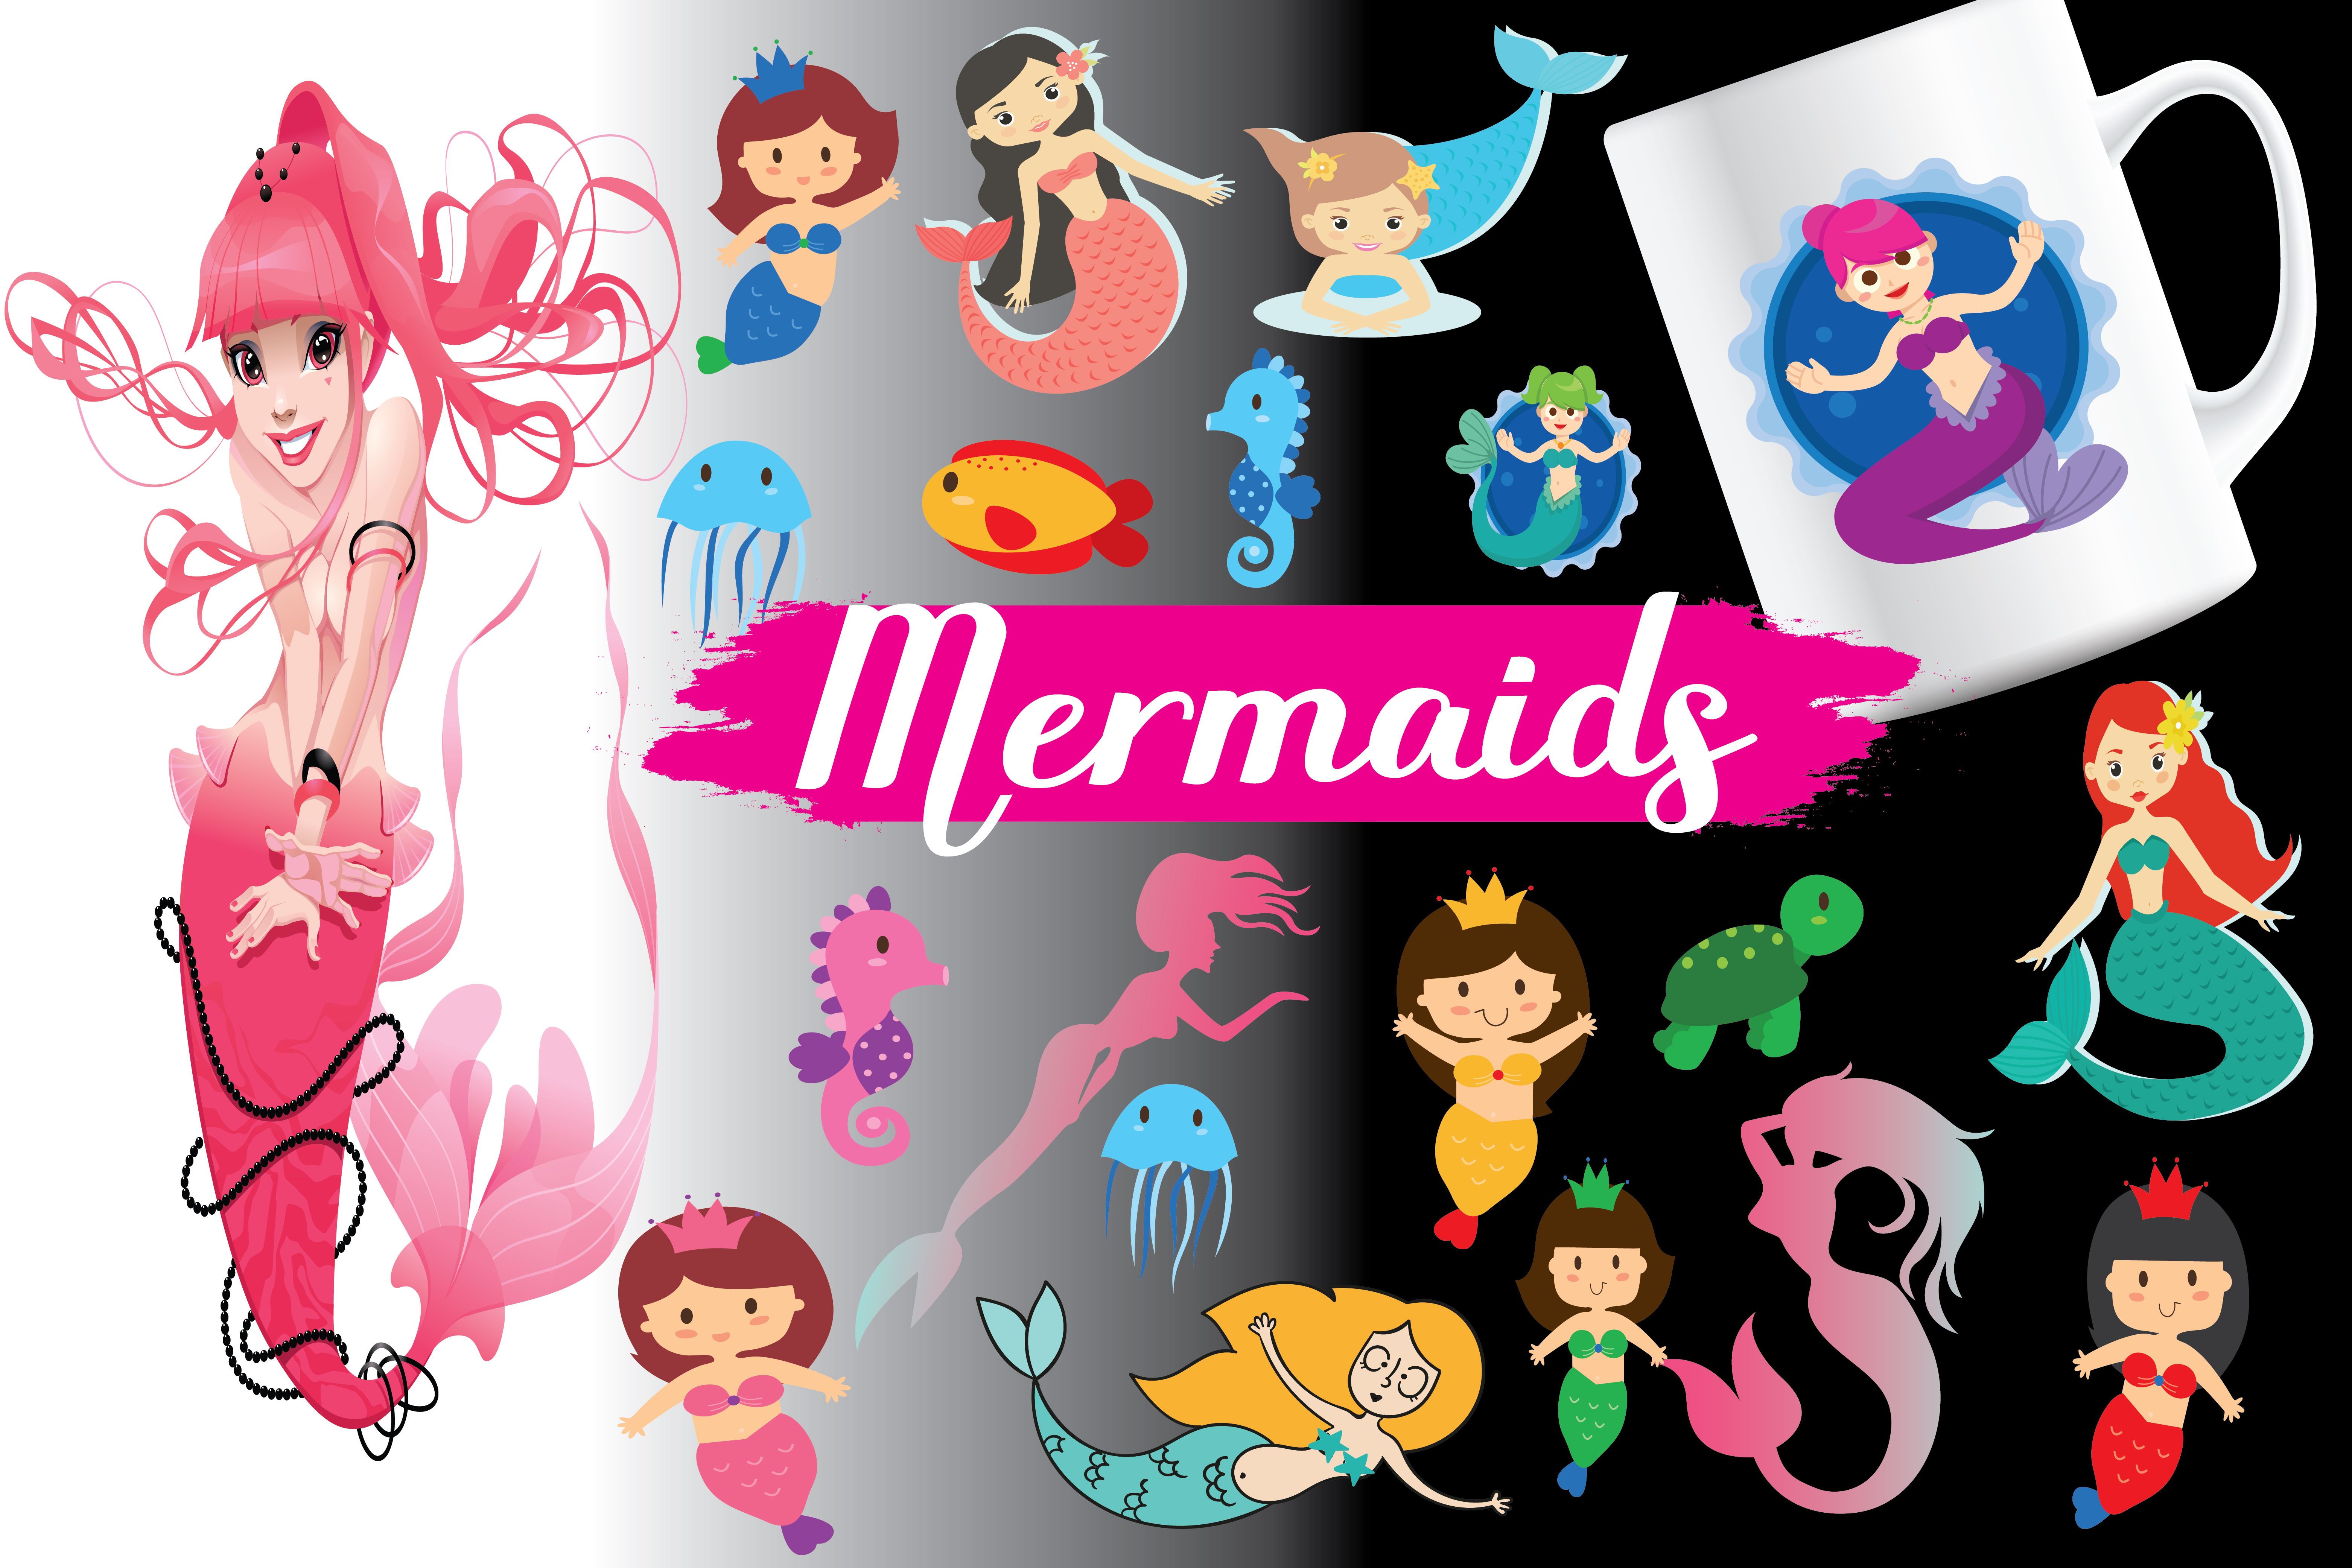 Mermaids,Mermaidselements,Mermaidsvector,Mermaids patterns,Mermaidsbundles,Mermaids,sea mermaids,sea animals,sea example image 1